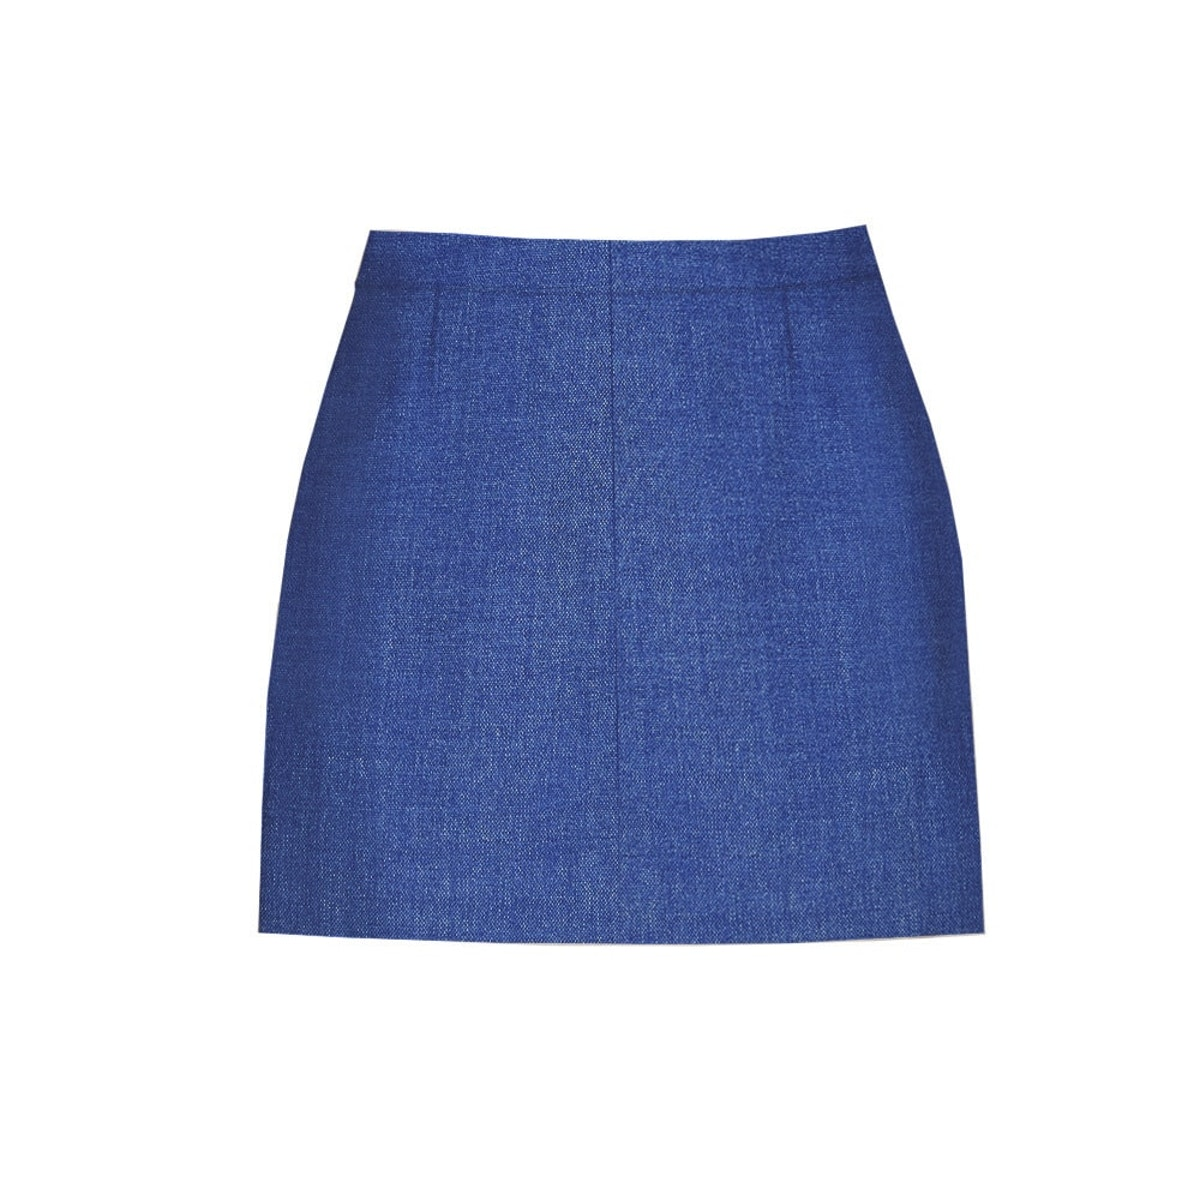 InStitchu Collection The Baudin Blue Textured Skirt